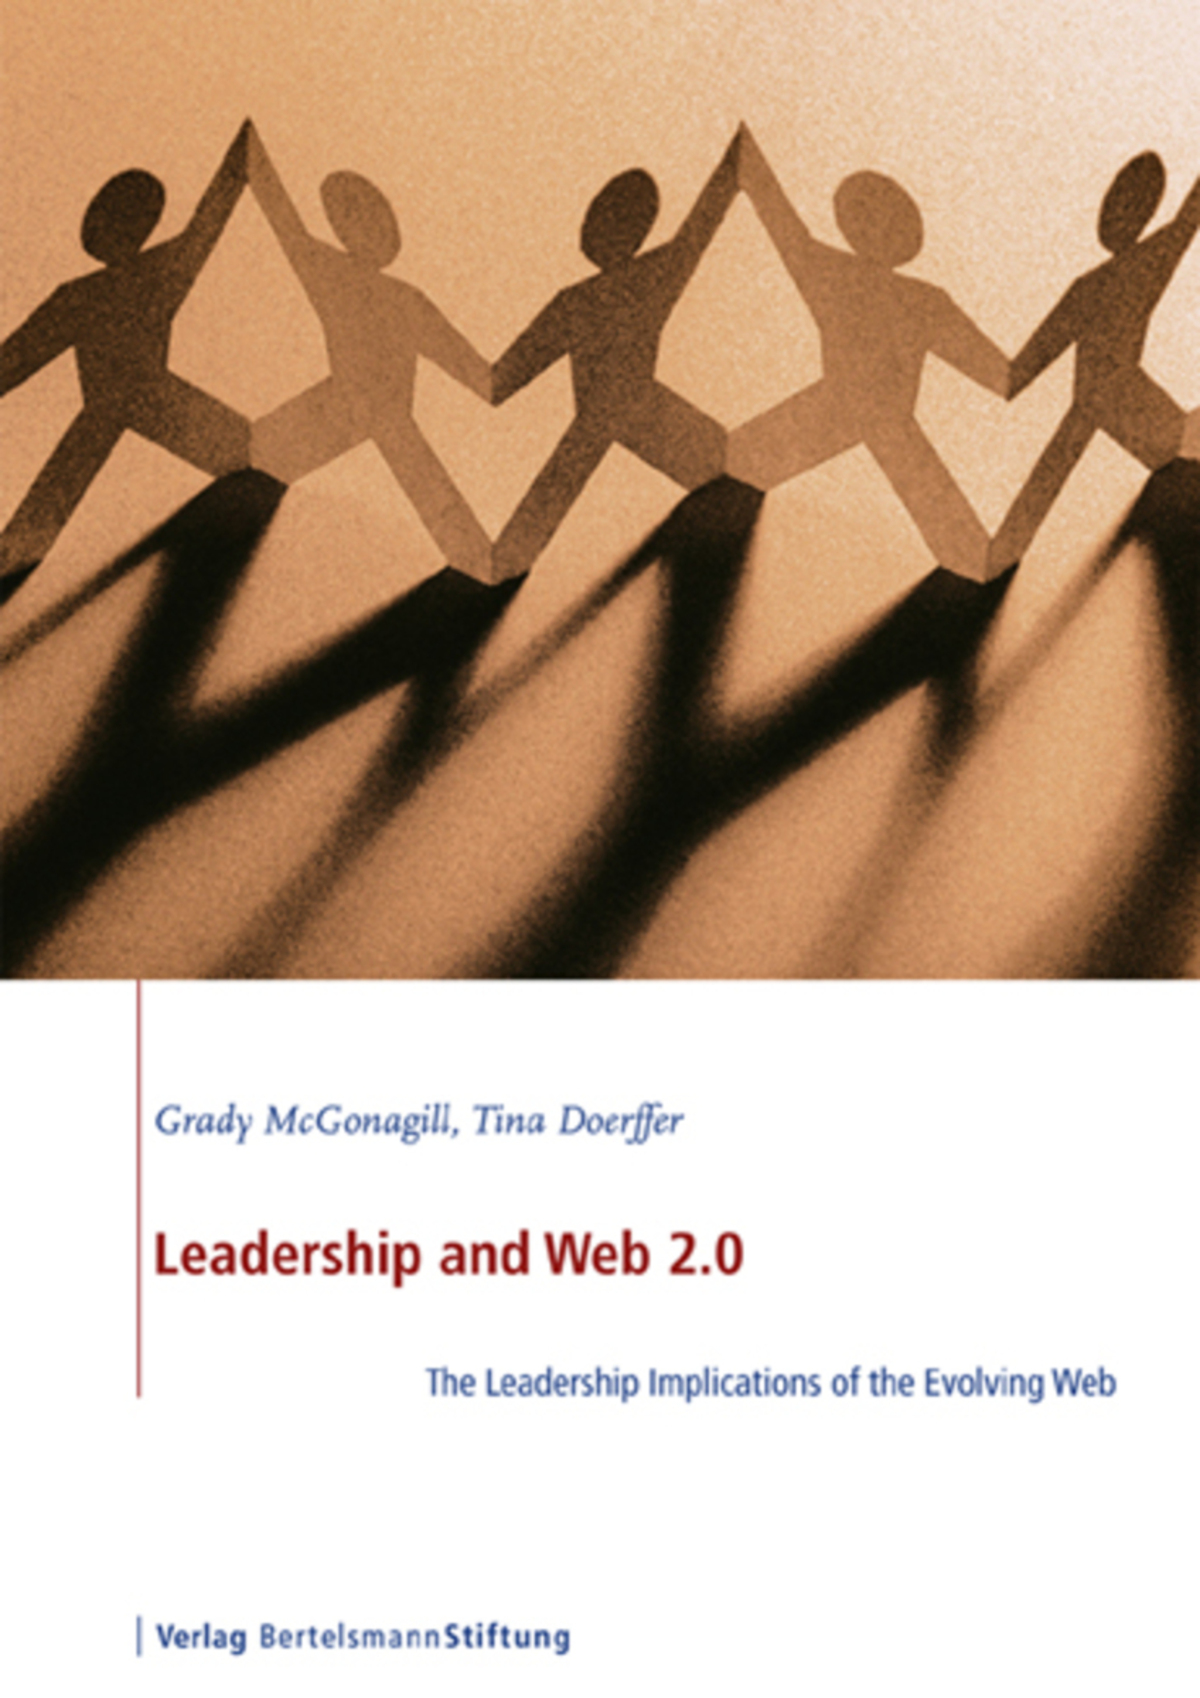 Leadership and Web 2.0